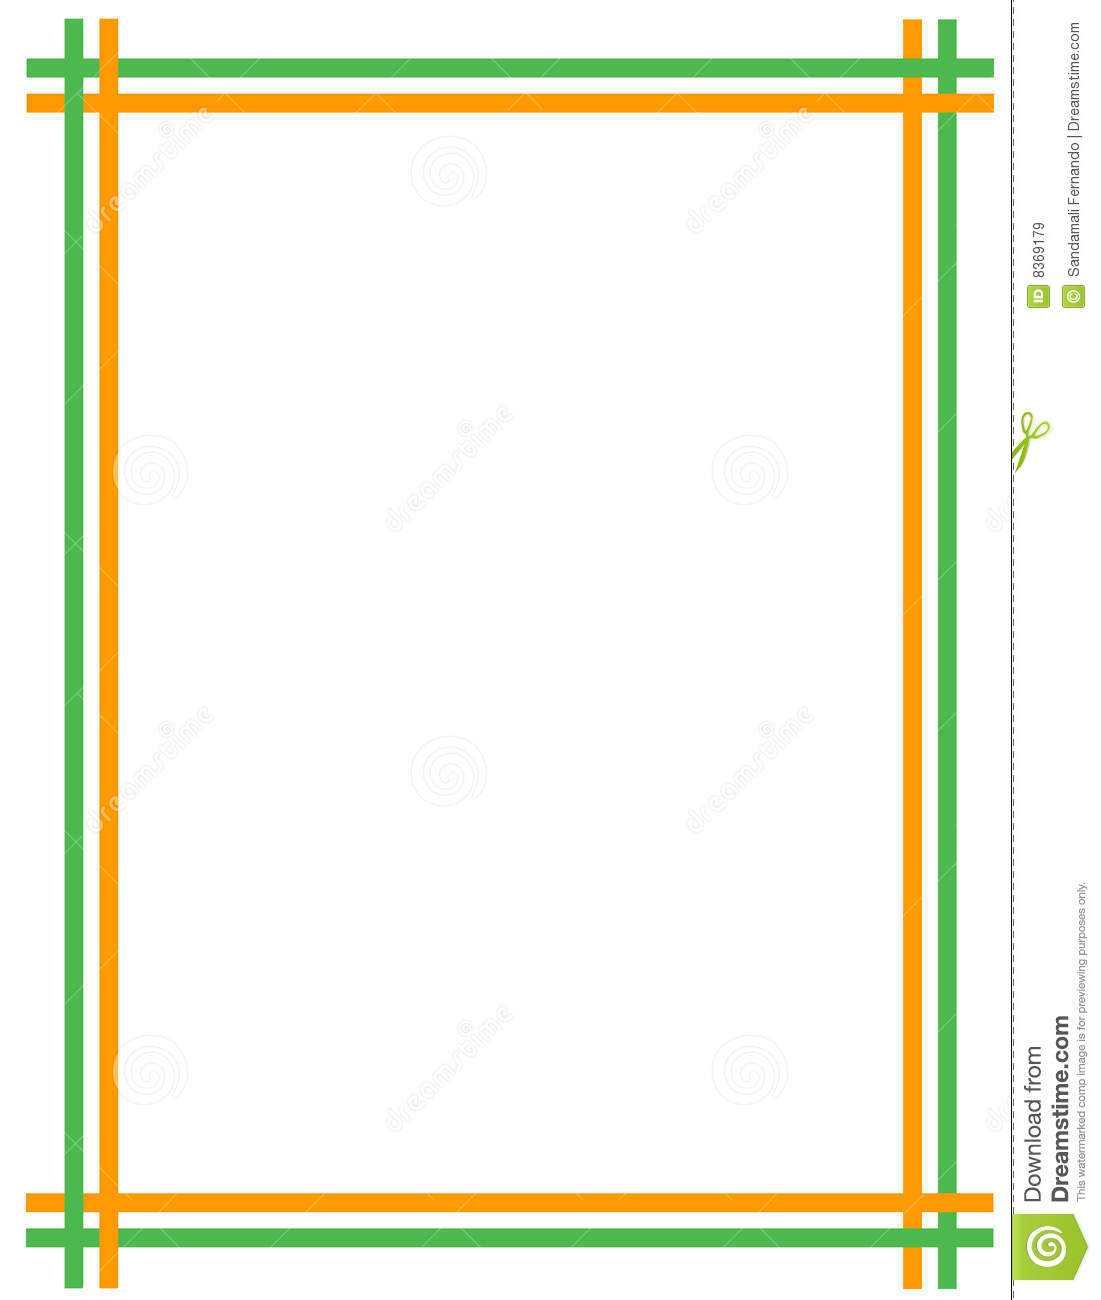 st patricks day border   frame royalty free stock images free st patrick's day clip art and graphics free st patrick's day clip art free